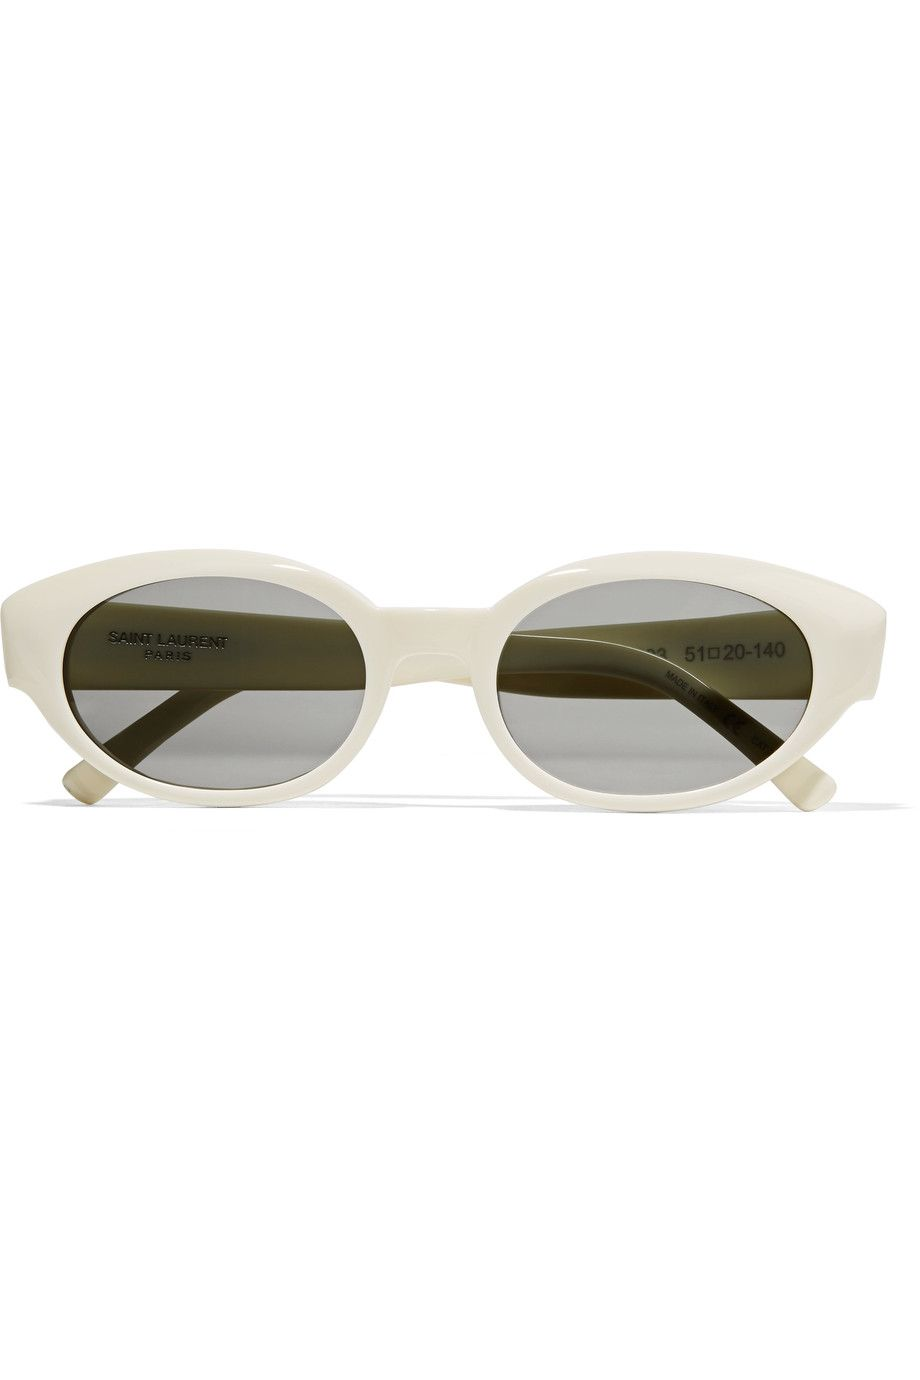 e4ab962f56a SAINT LAURENT SL 120 Lola round-frame acetate sunglasses.  saintlaurent